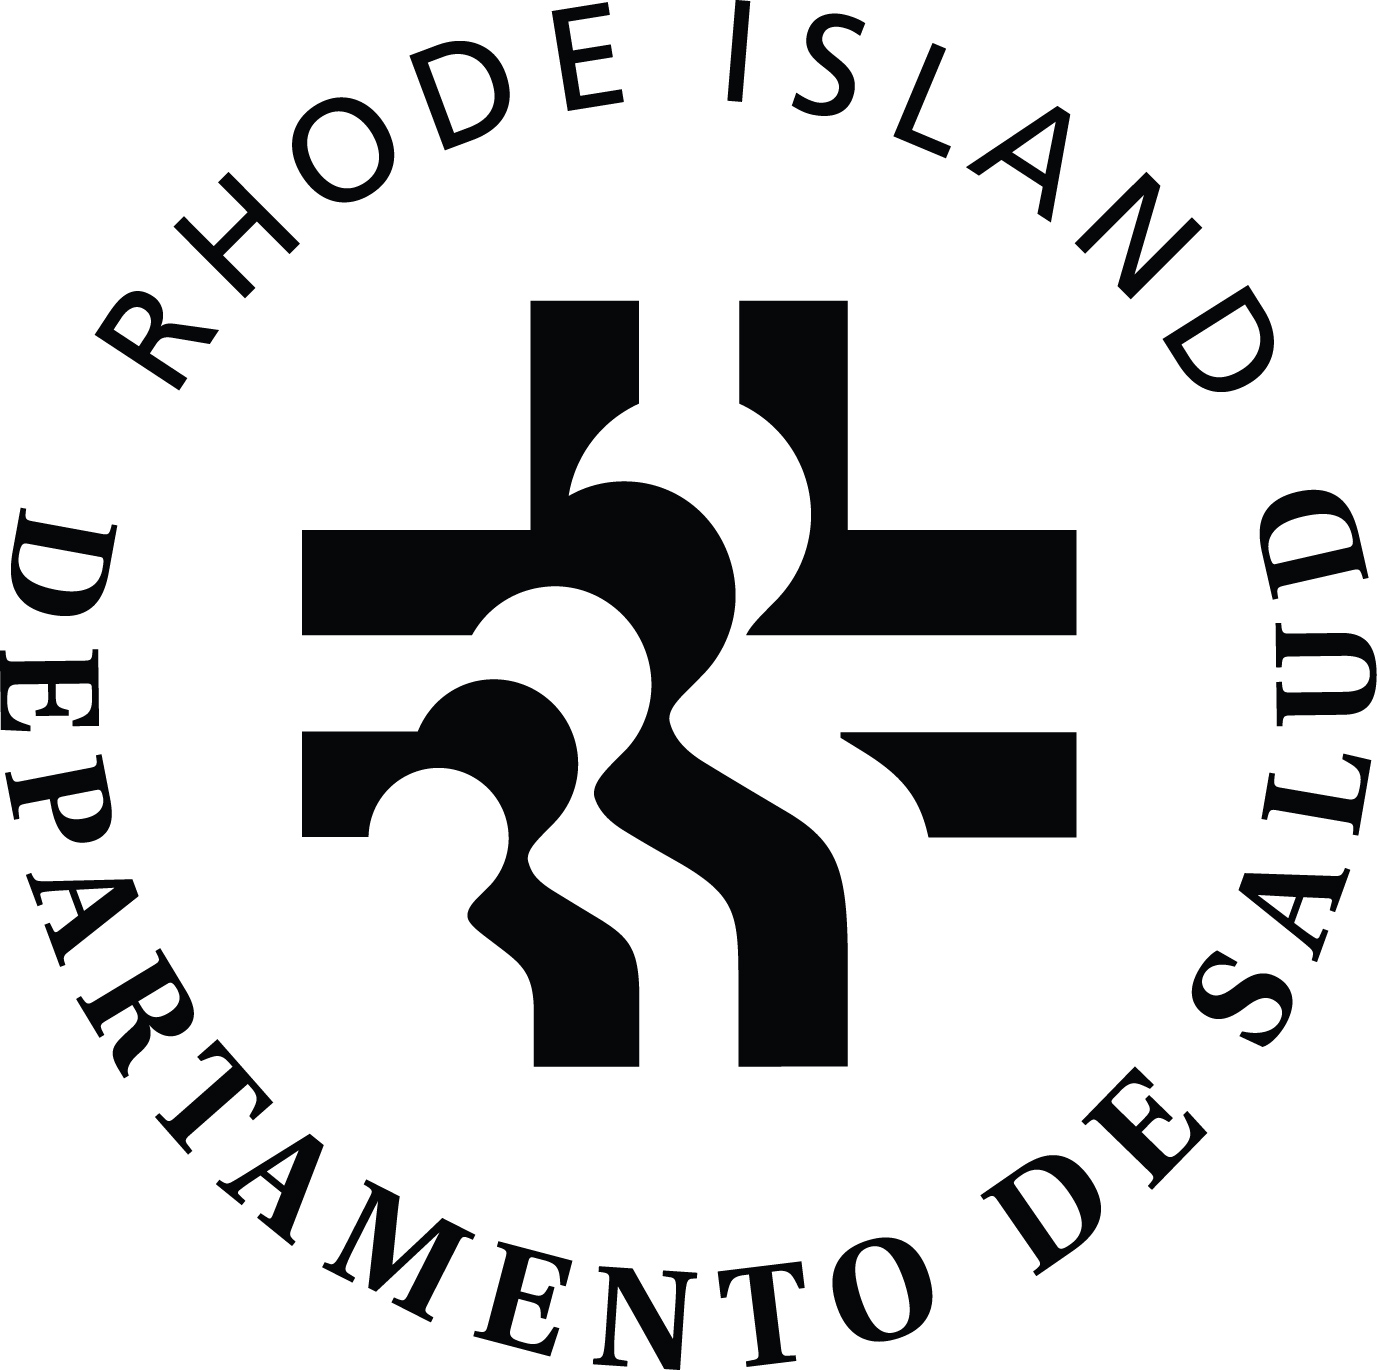 State of Rhode Island: Department of HealthRhode Island Departamento de Salud